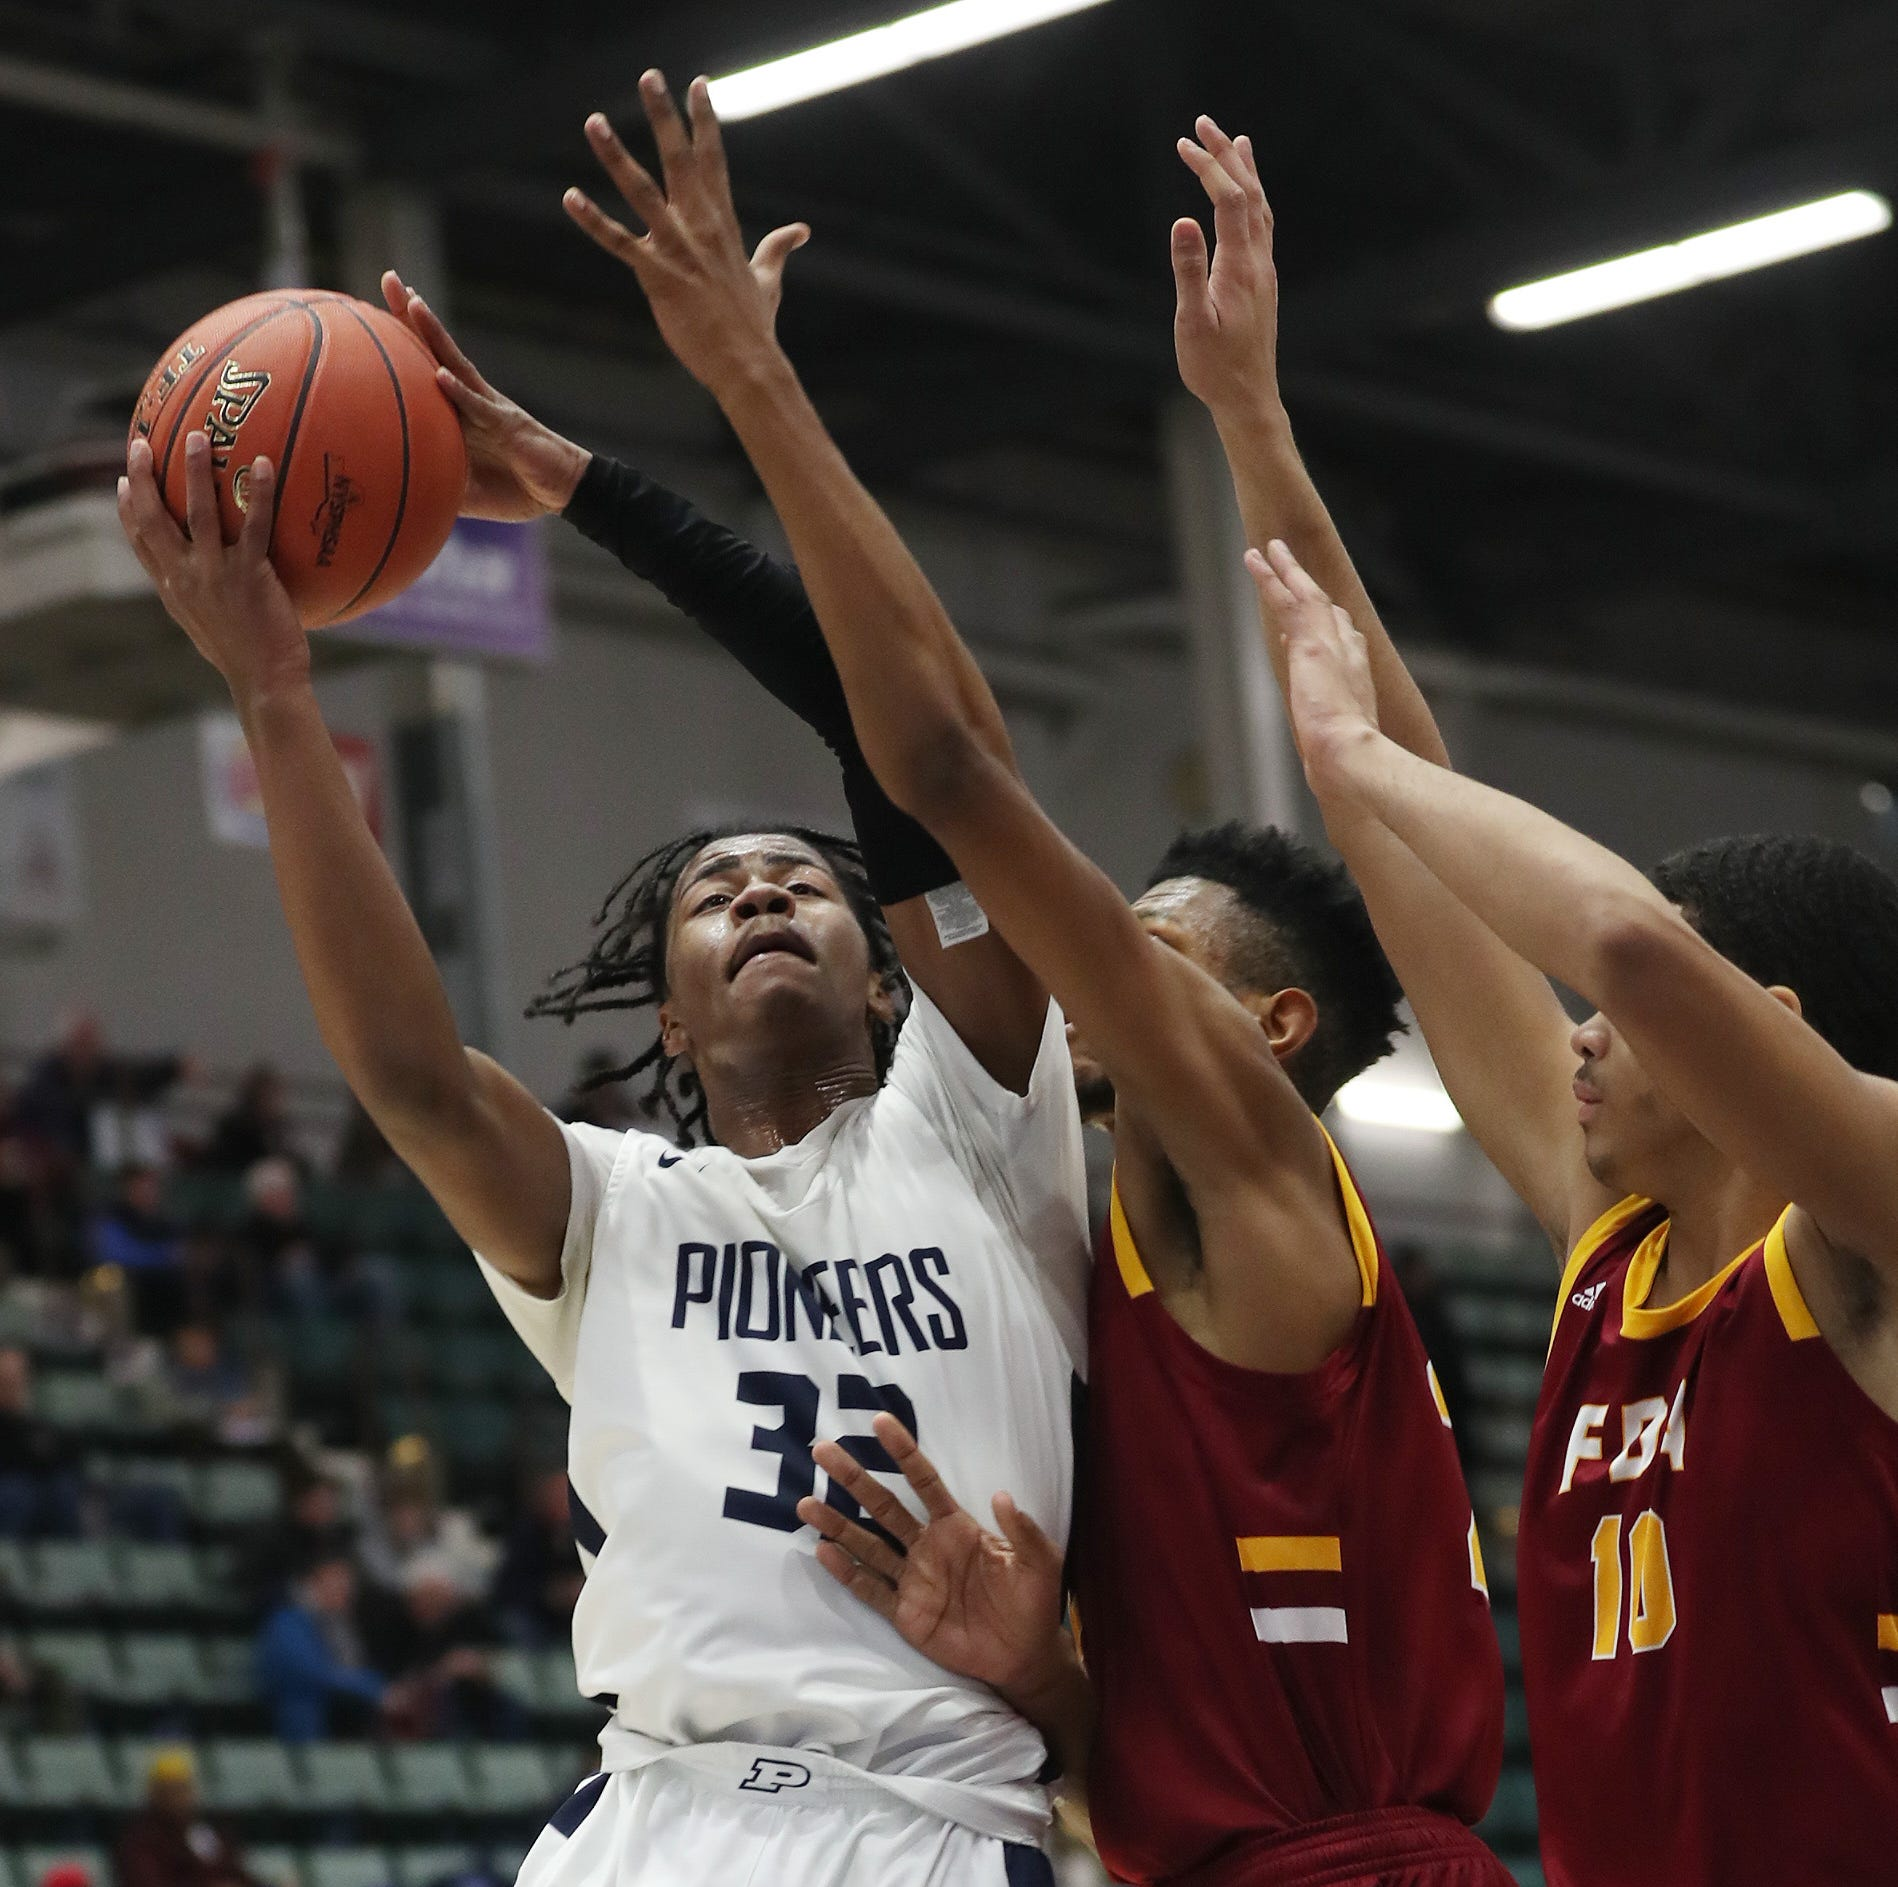 Inspirational season comes to an end for Poughkeepsie boys basketball at Federations